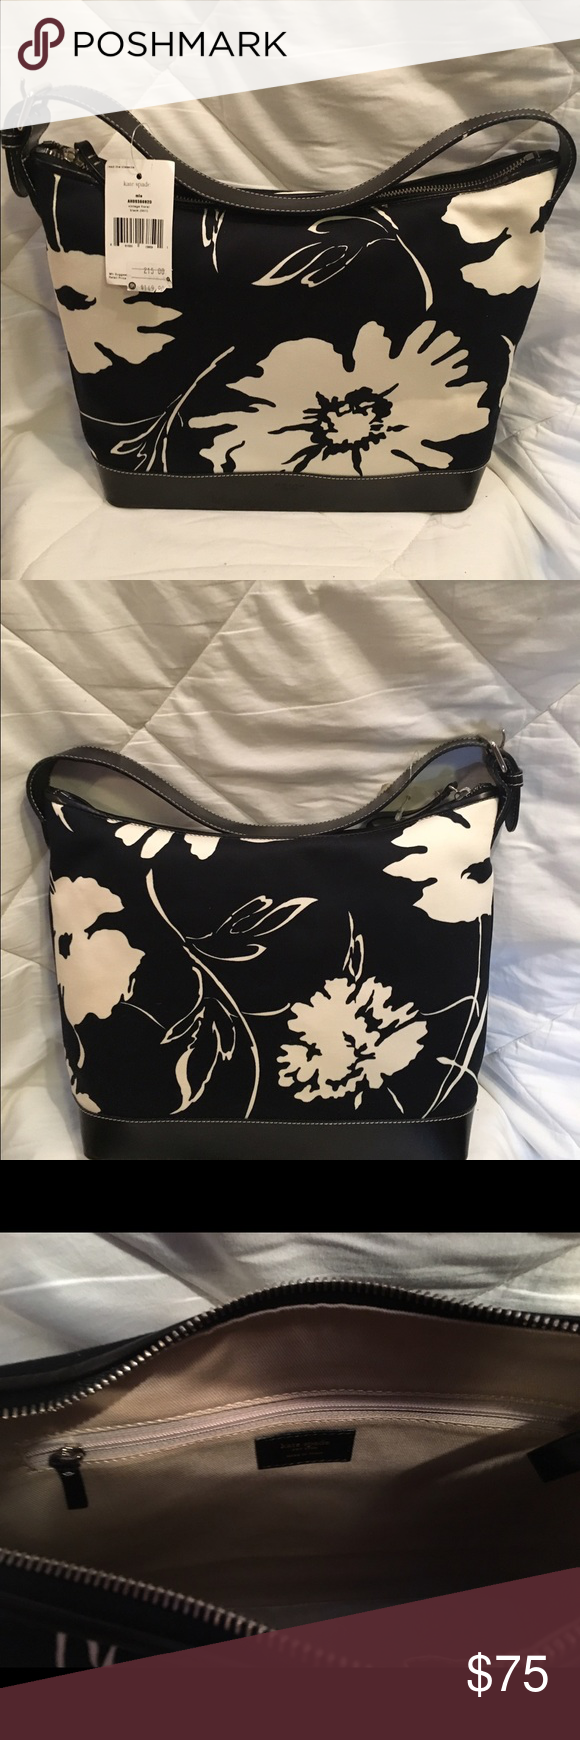 Vintage Kate Spade handbag Vintage Kate Spade hand bag - excellent condition. authentic kate spade Bags Satchels